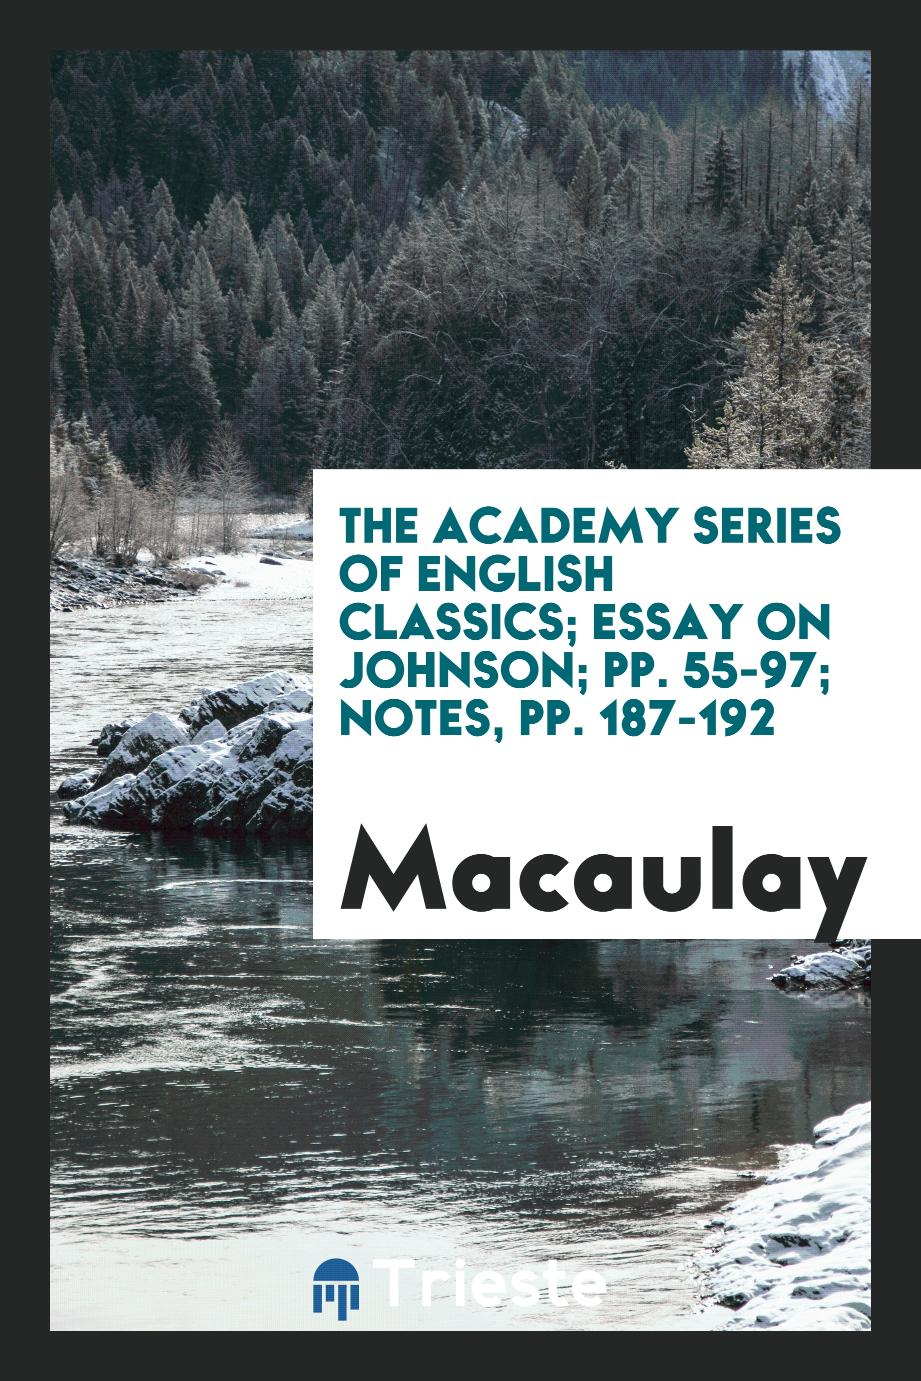 The Academy Series of English Classics; Essay on Johnson; pp. 55-97; Notes, pp. 187-192